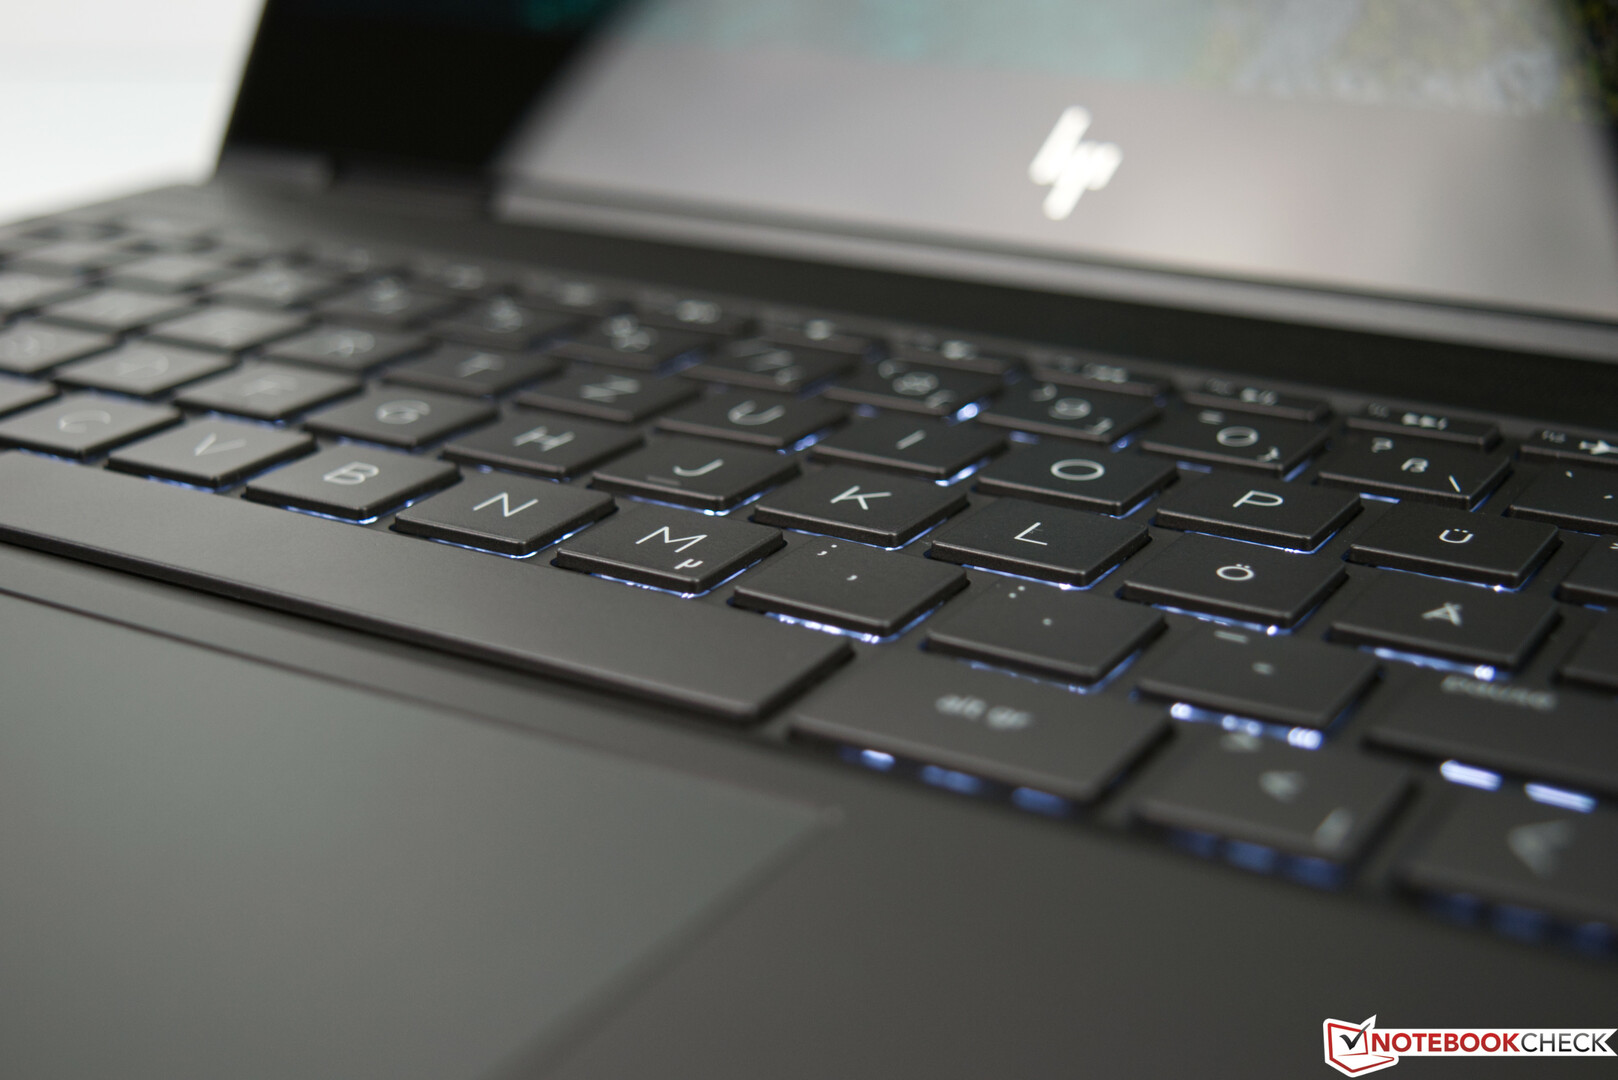 HP Envy x360 13 Convertible Review - Thinkspace Technologies